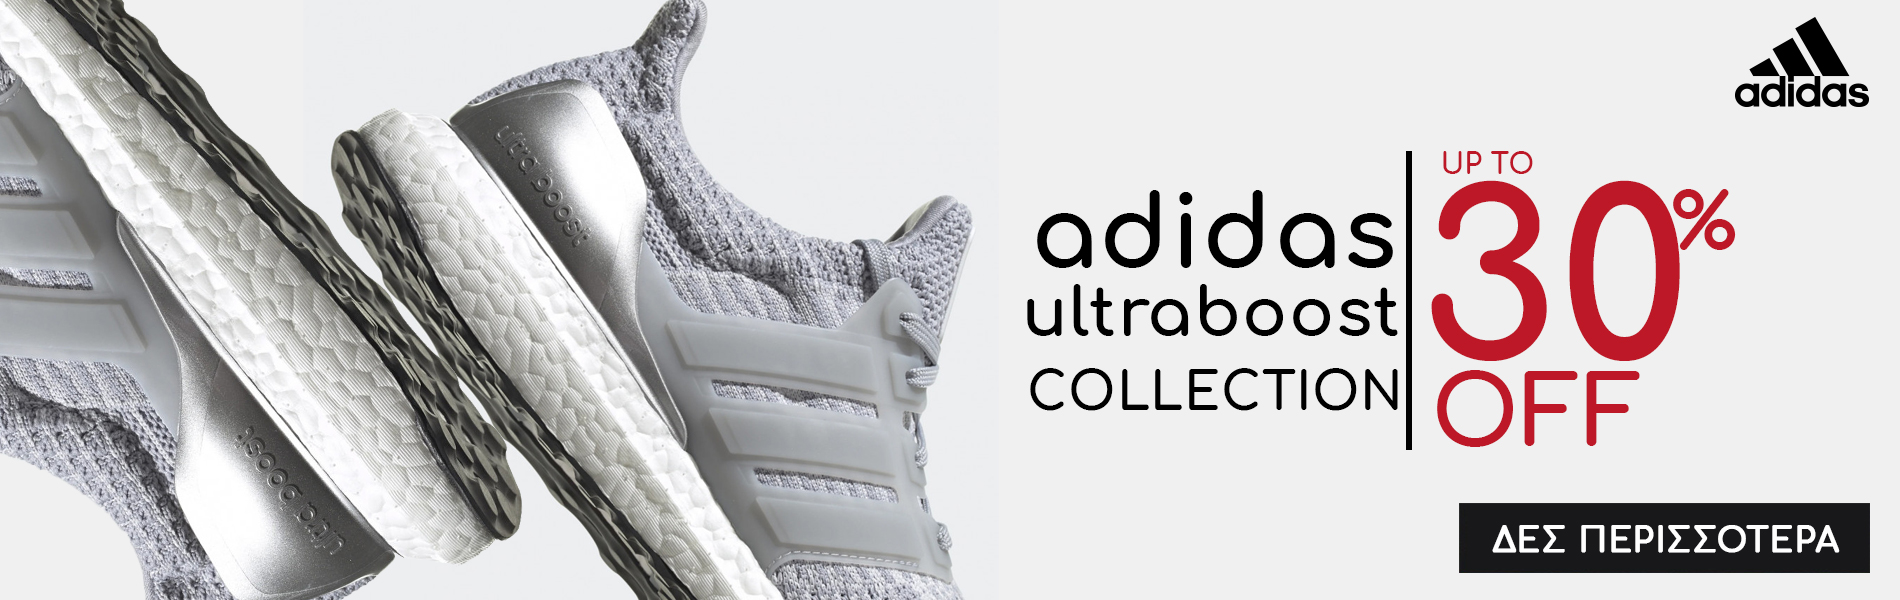 adidas Ultraboost up to -30%